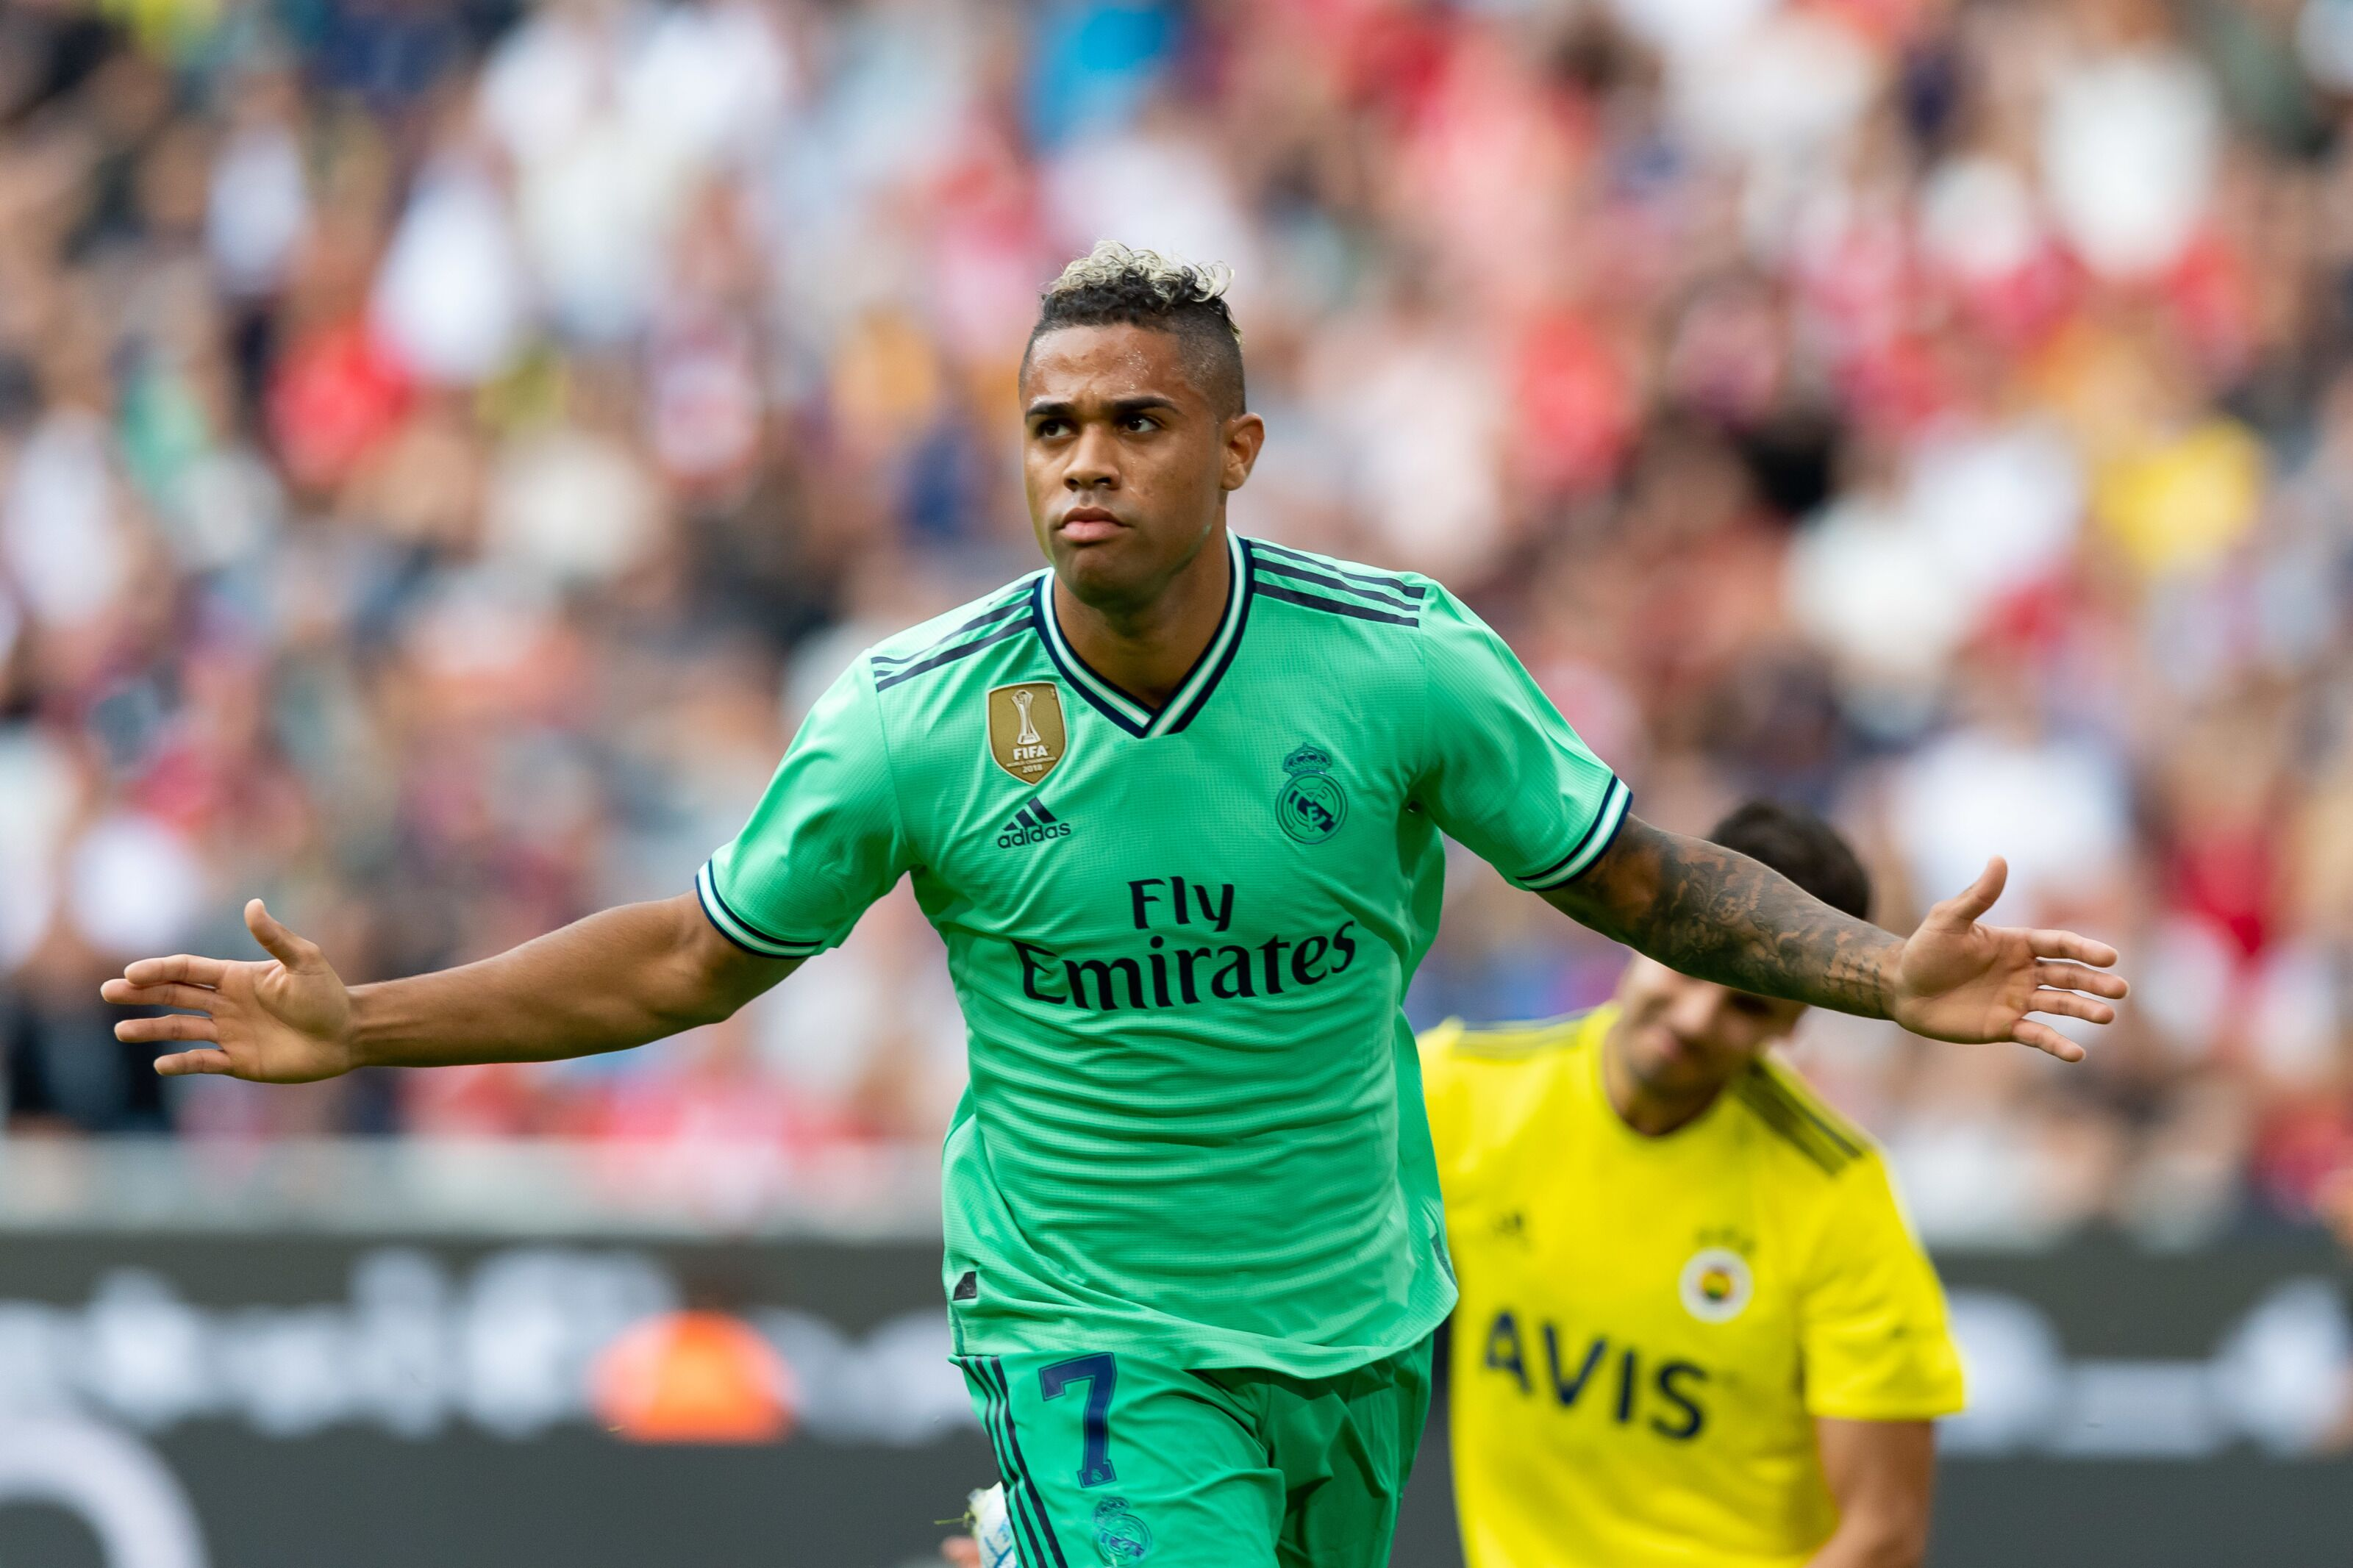 Real Madrid: Could Mariano Diaz shine this year?